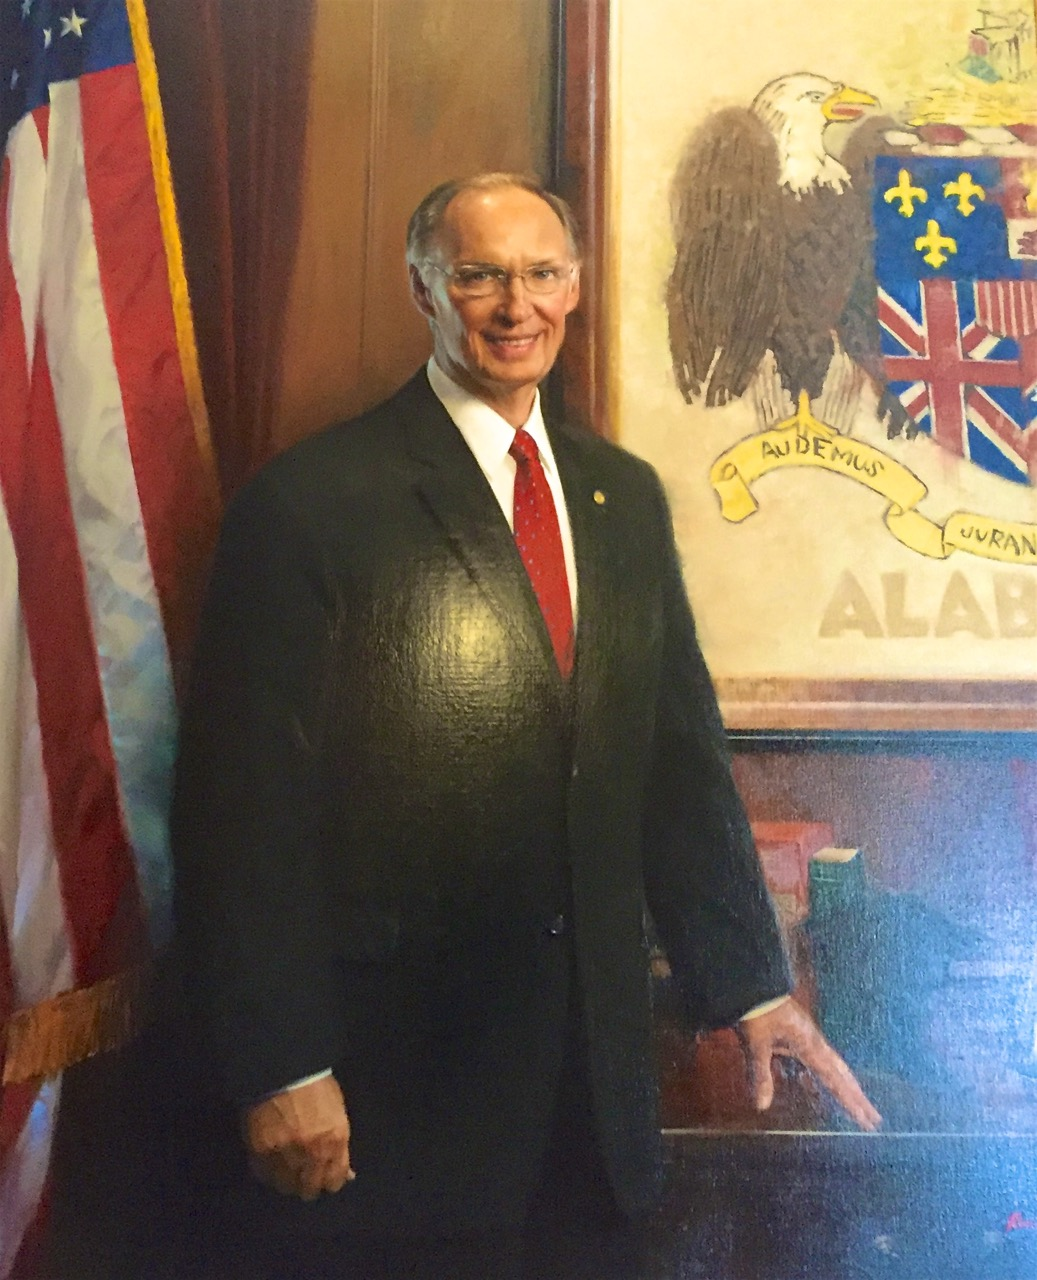 alabama governor robert bentley to resign rather than face